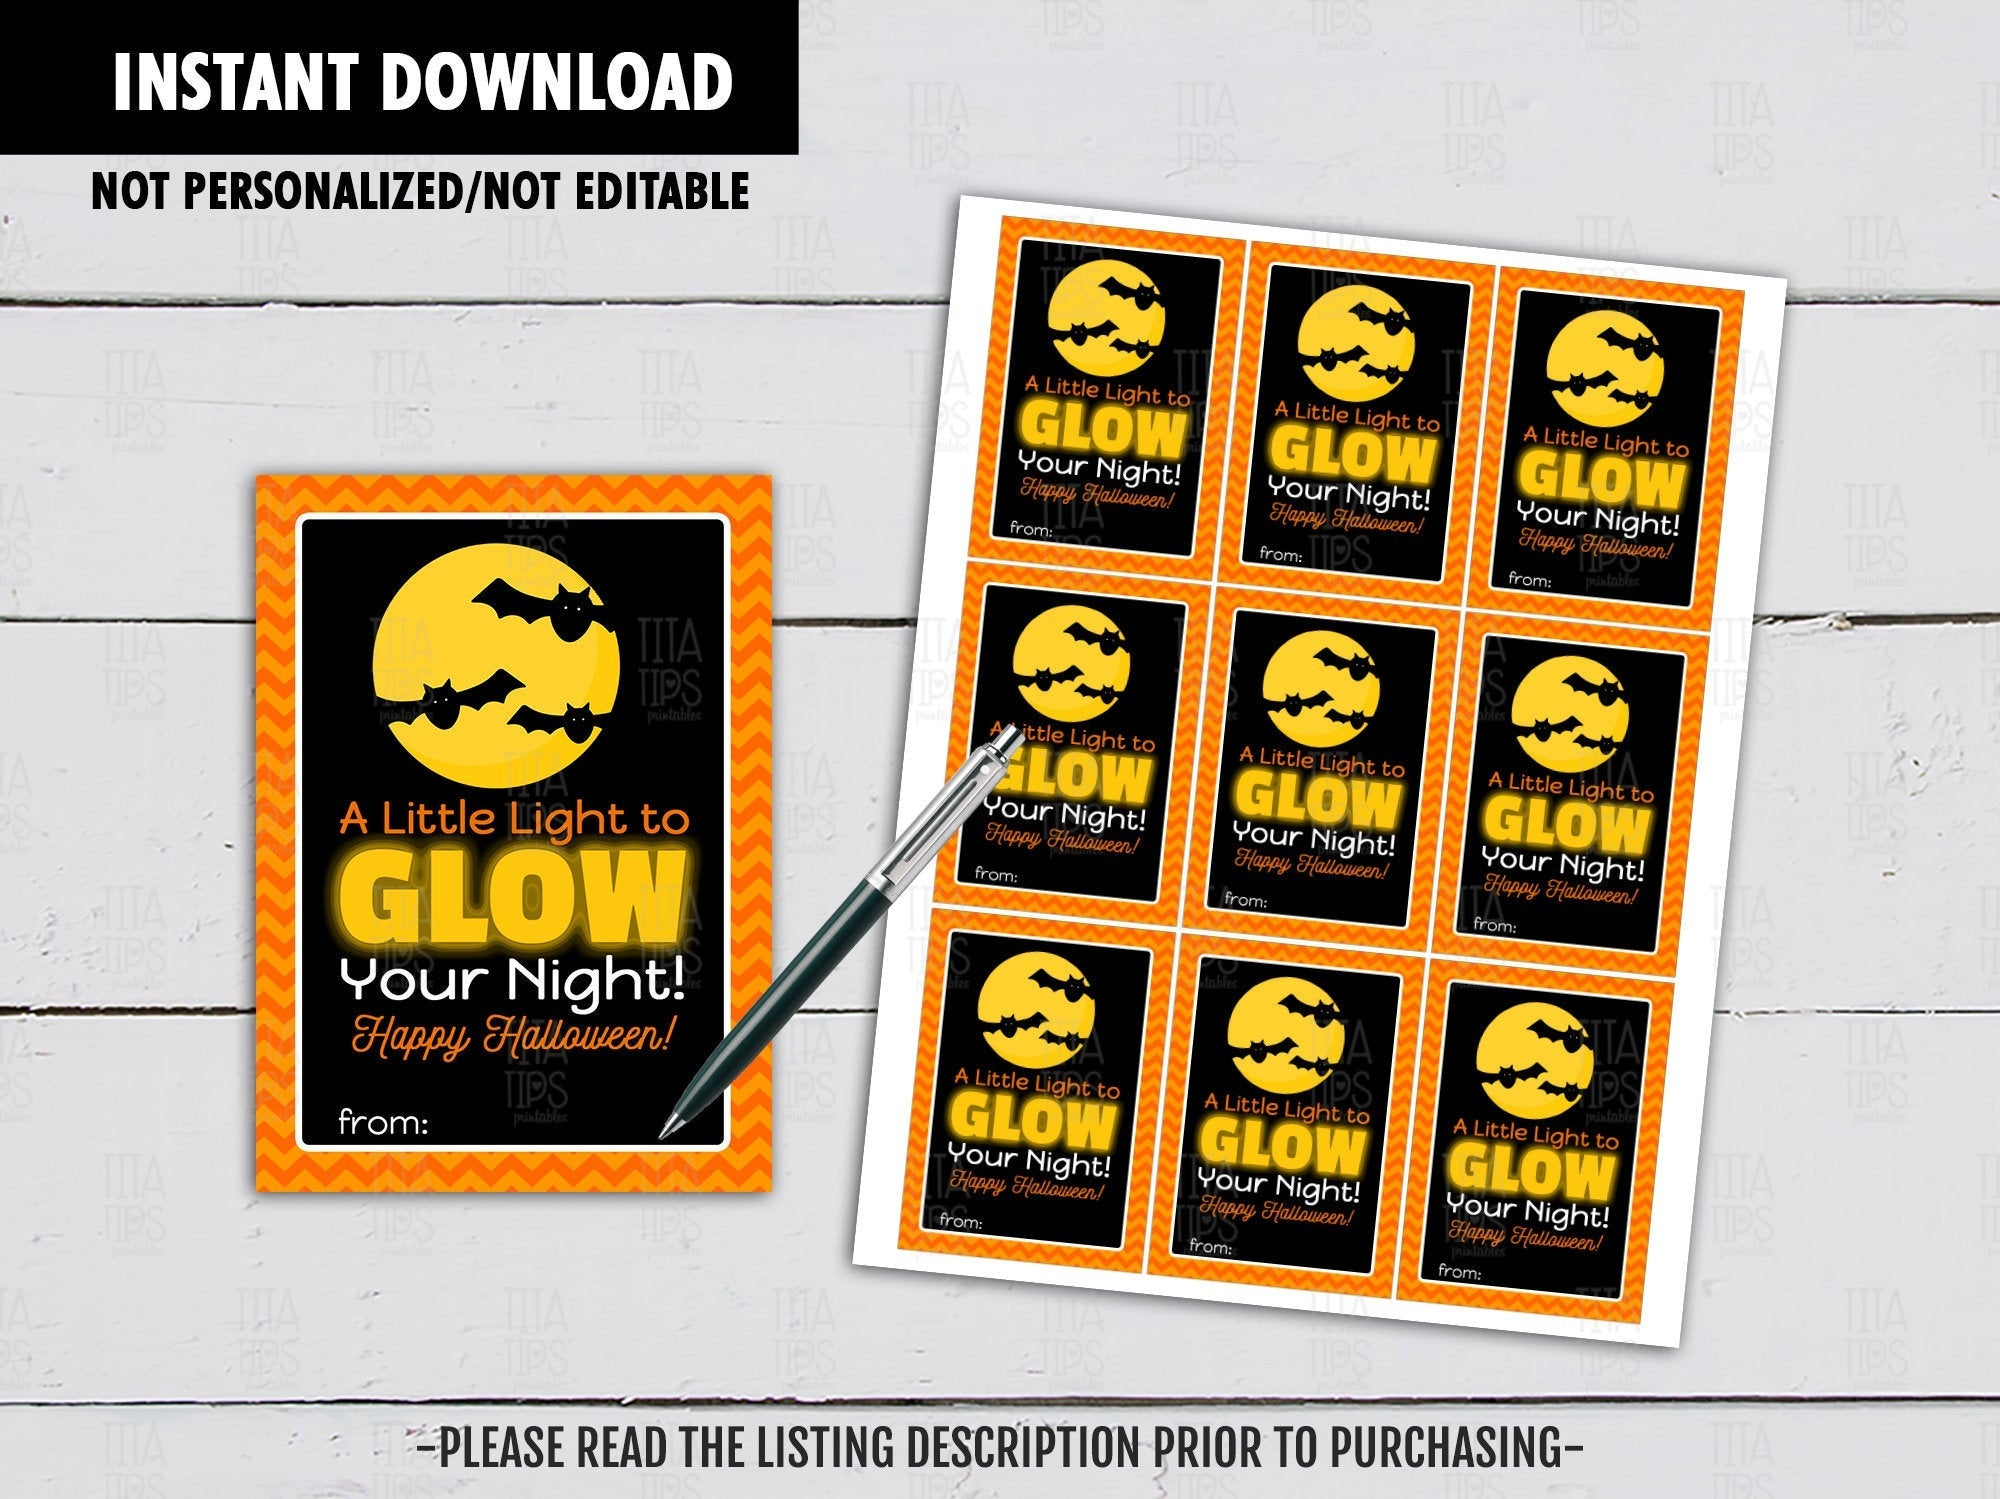 A Little Light to Glow your Night, Halloween Gift Tags Ideas, Glow stick card, Instant Download - TitaTipsPrintables